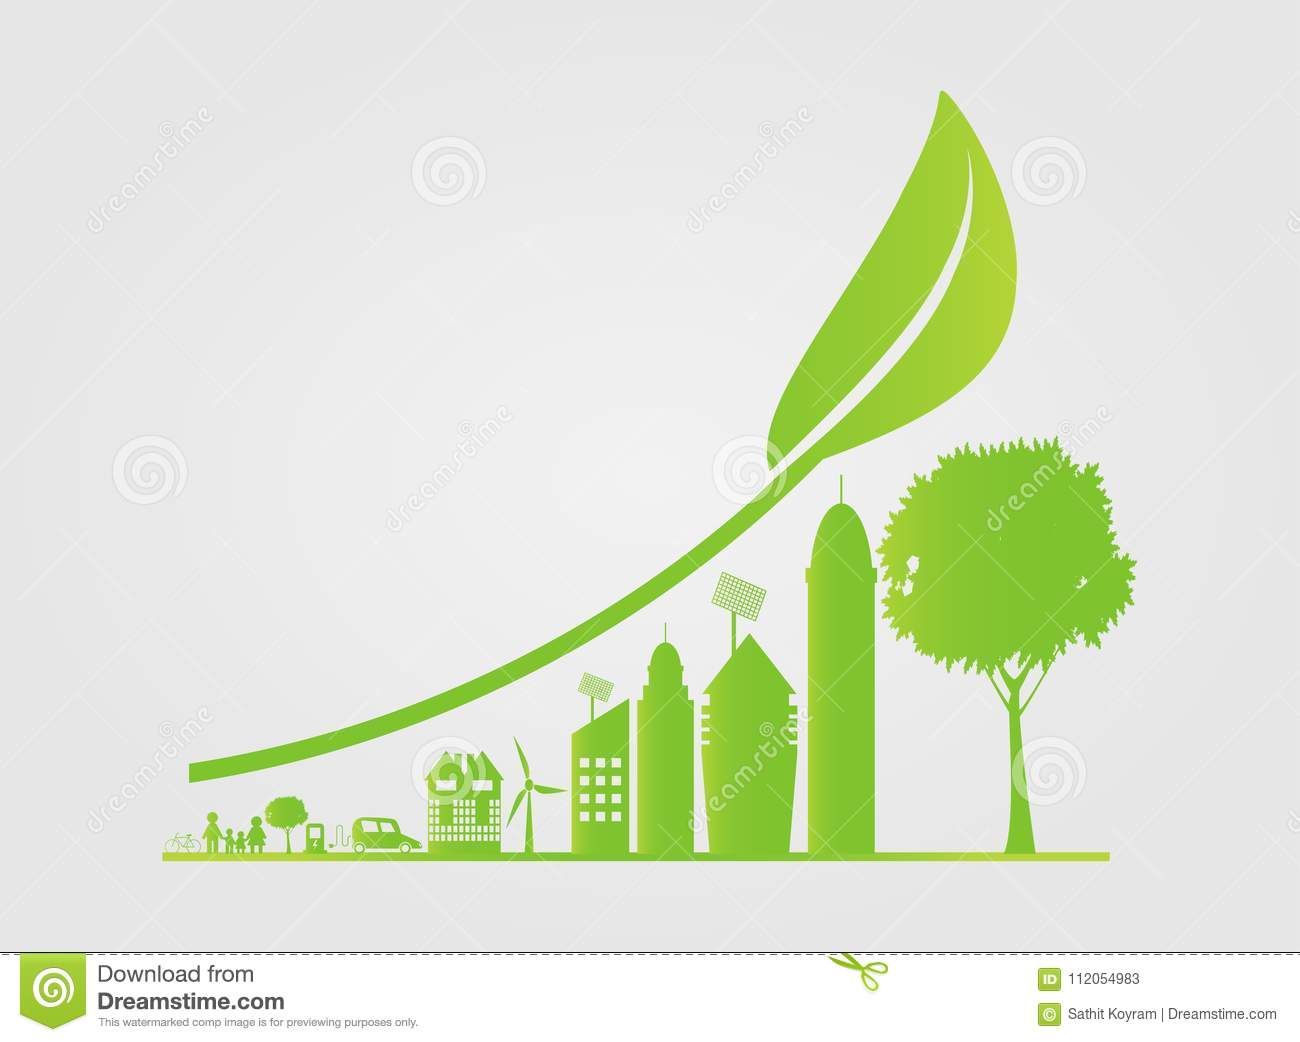 Sustainable Urban Growth in the City,Ecology.Green cities help the world with eco-friendly concept ideas, vector illustration